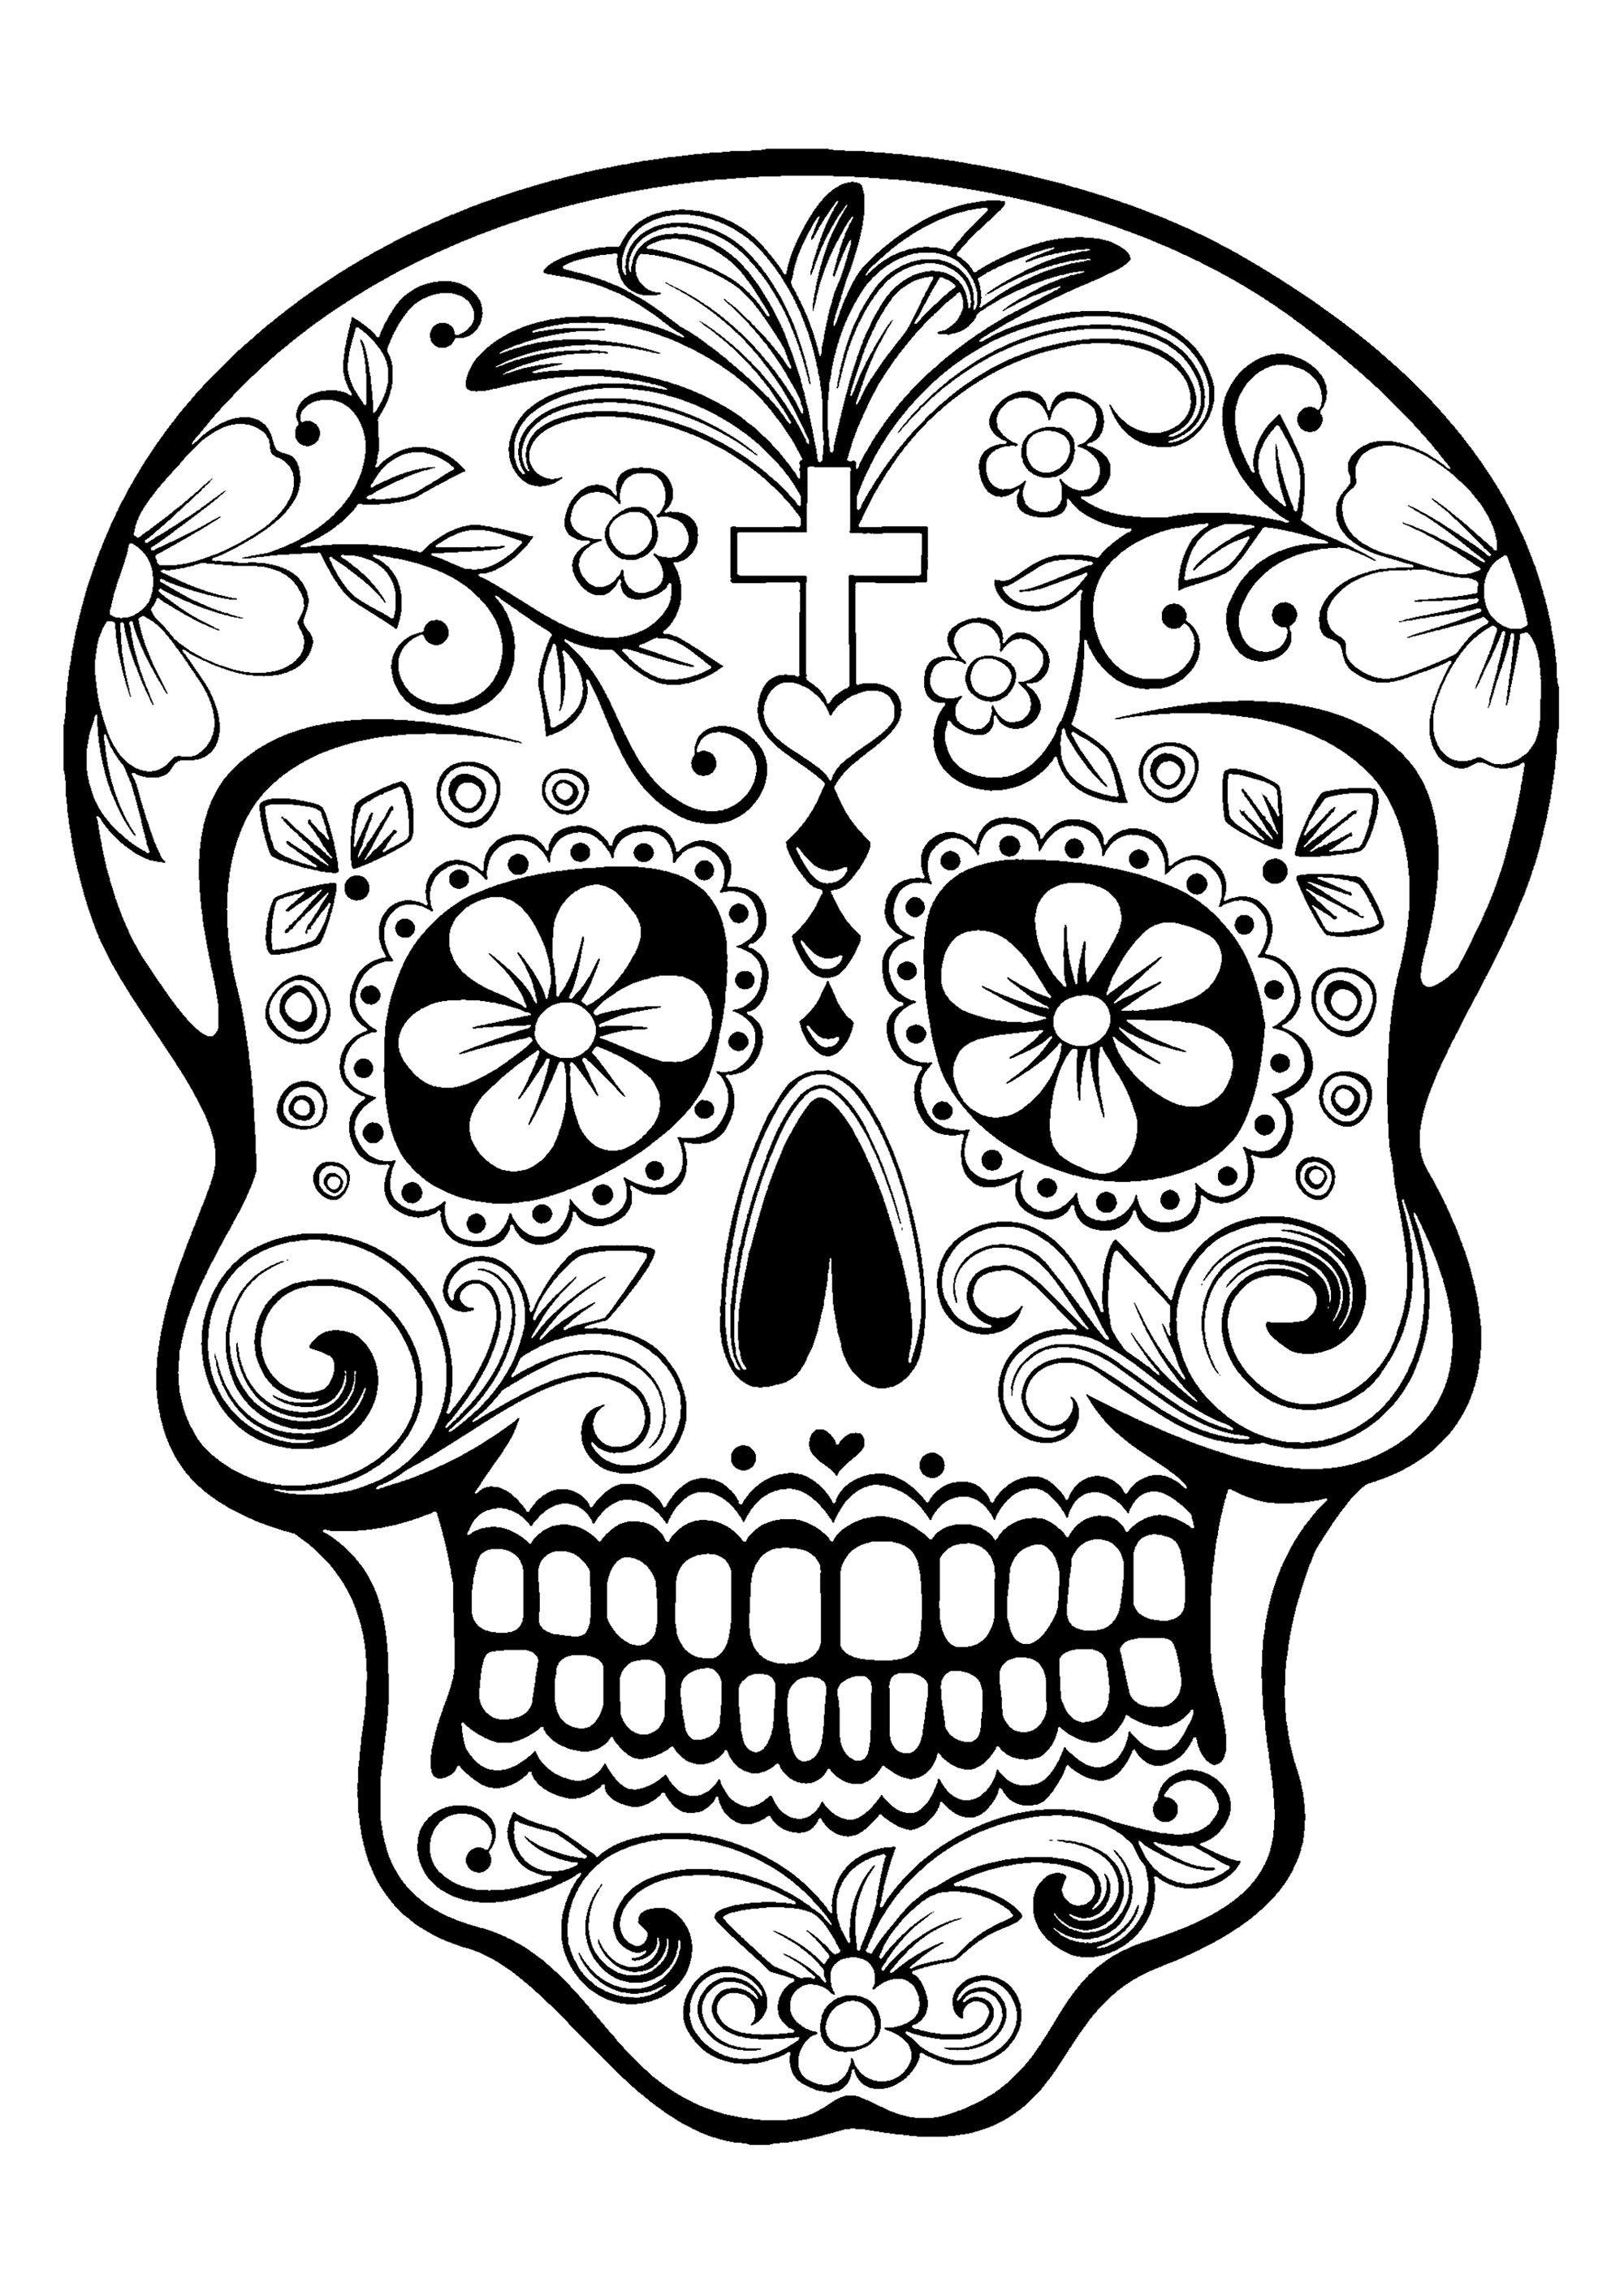 el coloring pages - photo#12